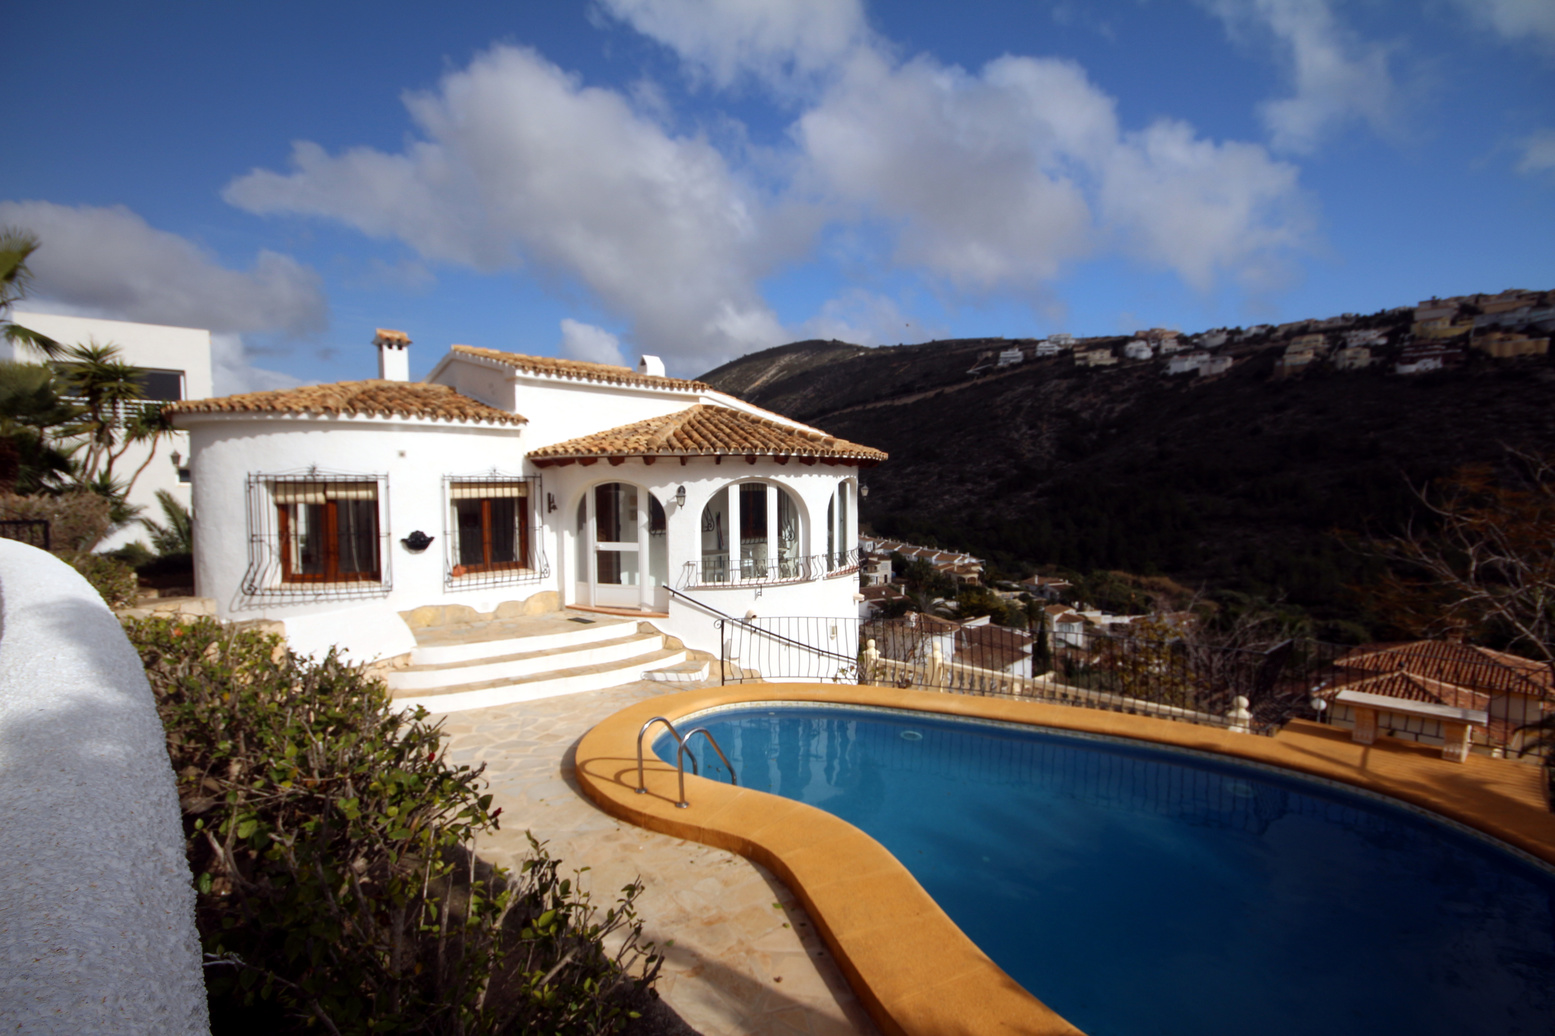 THREE BEDROOM, THREE BATHROOM VILLA WITH POOL IN GOLDEN VALLEY